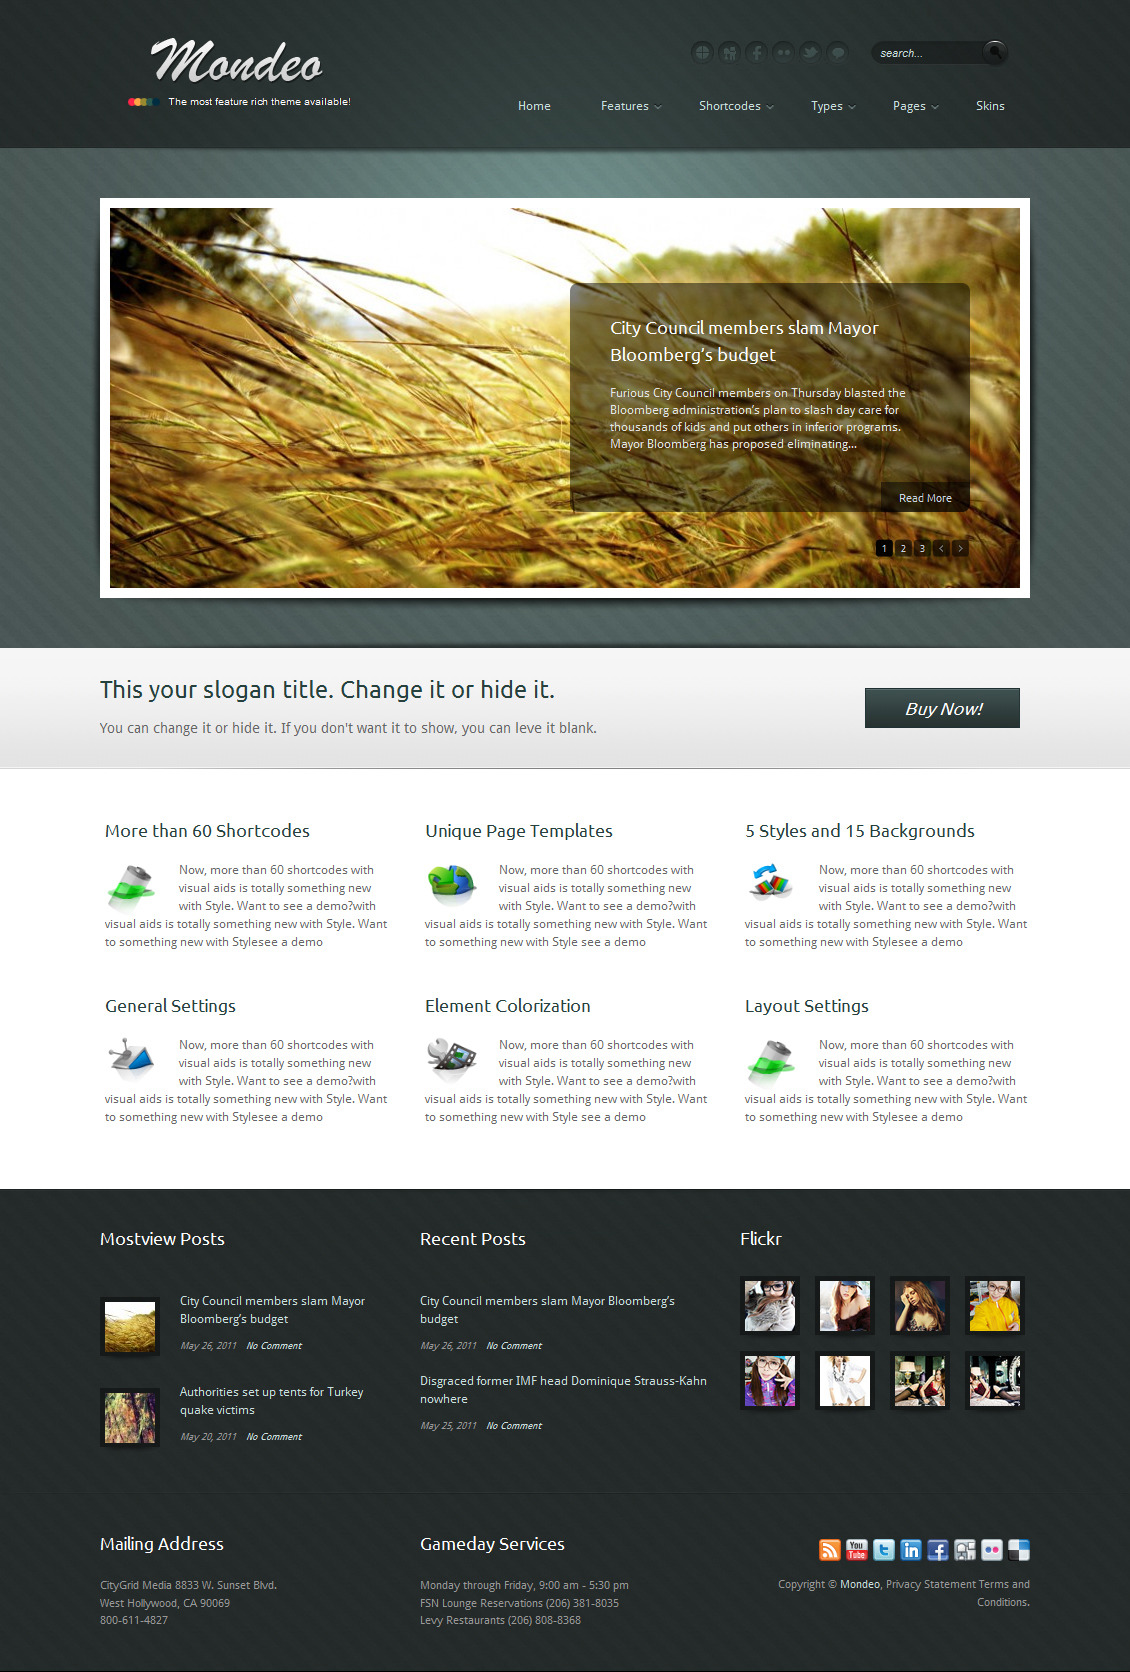 Mondeo Corporate & Portfolio WordPress Theme - The homepage template 5.